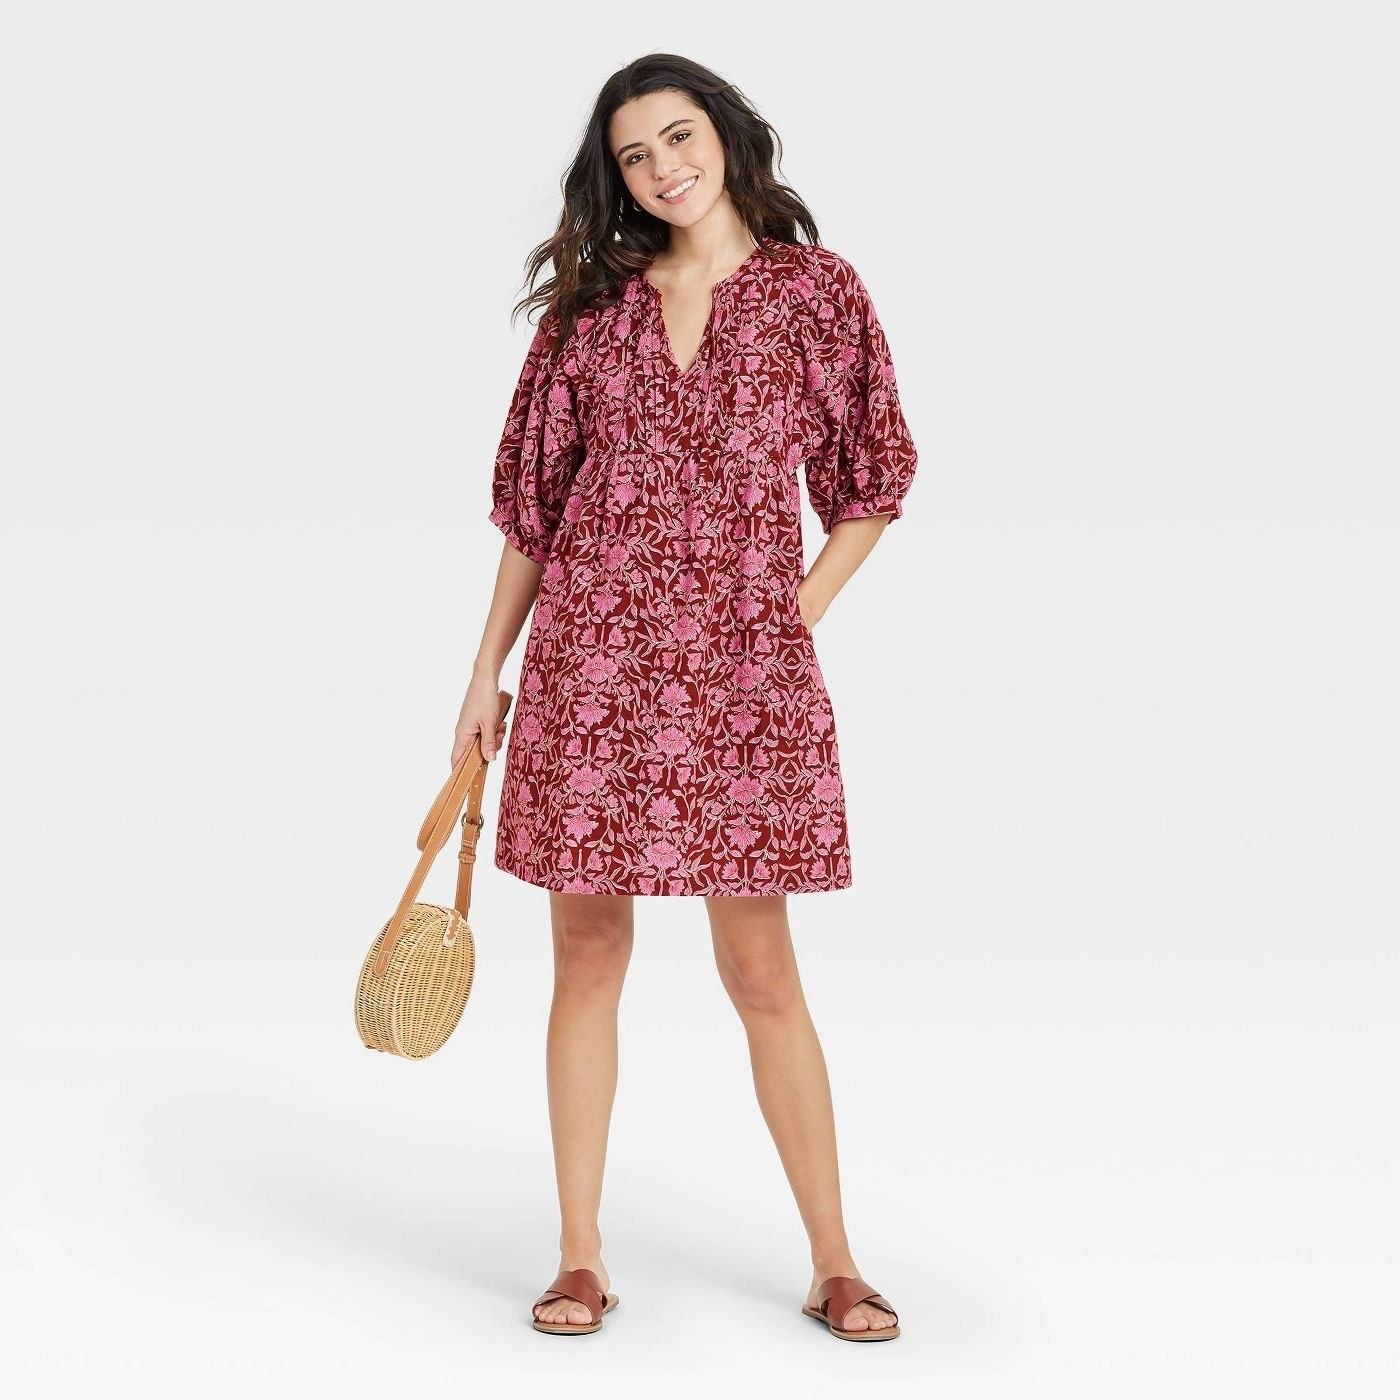 Model wearing pink floral dress with burgundy background, stops above the knee